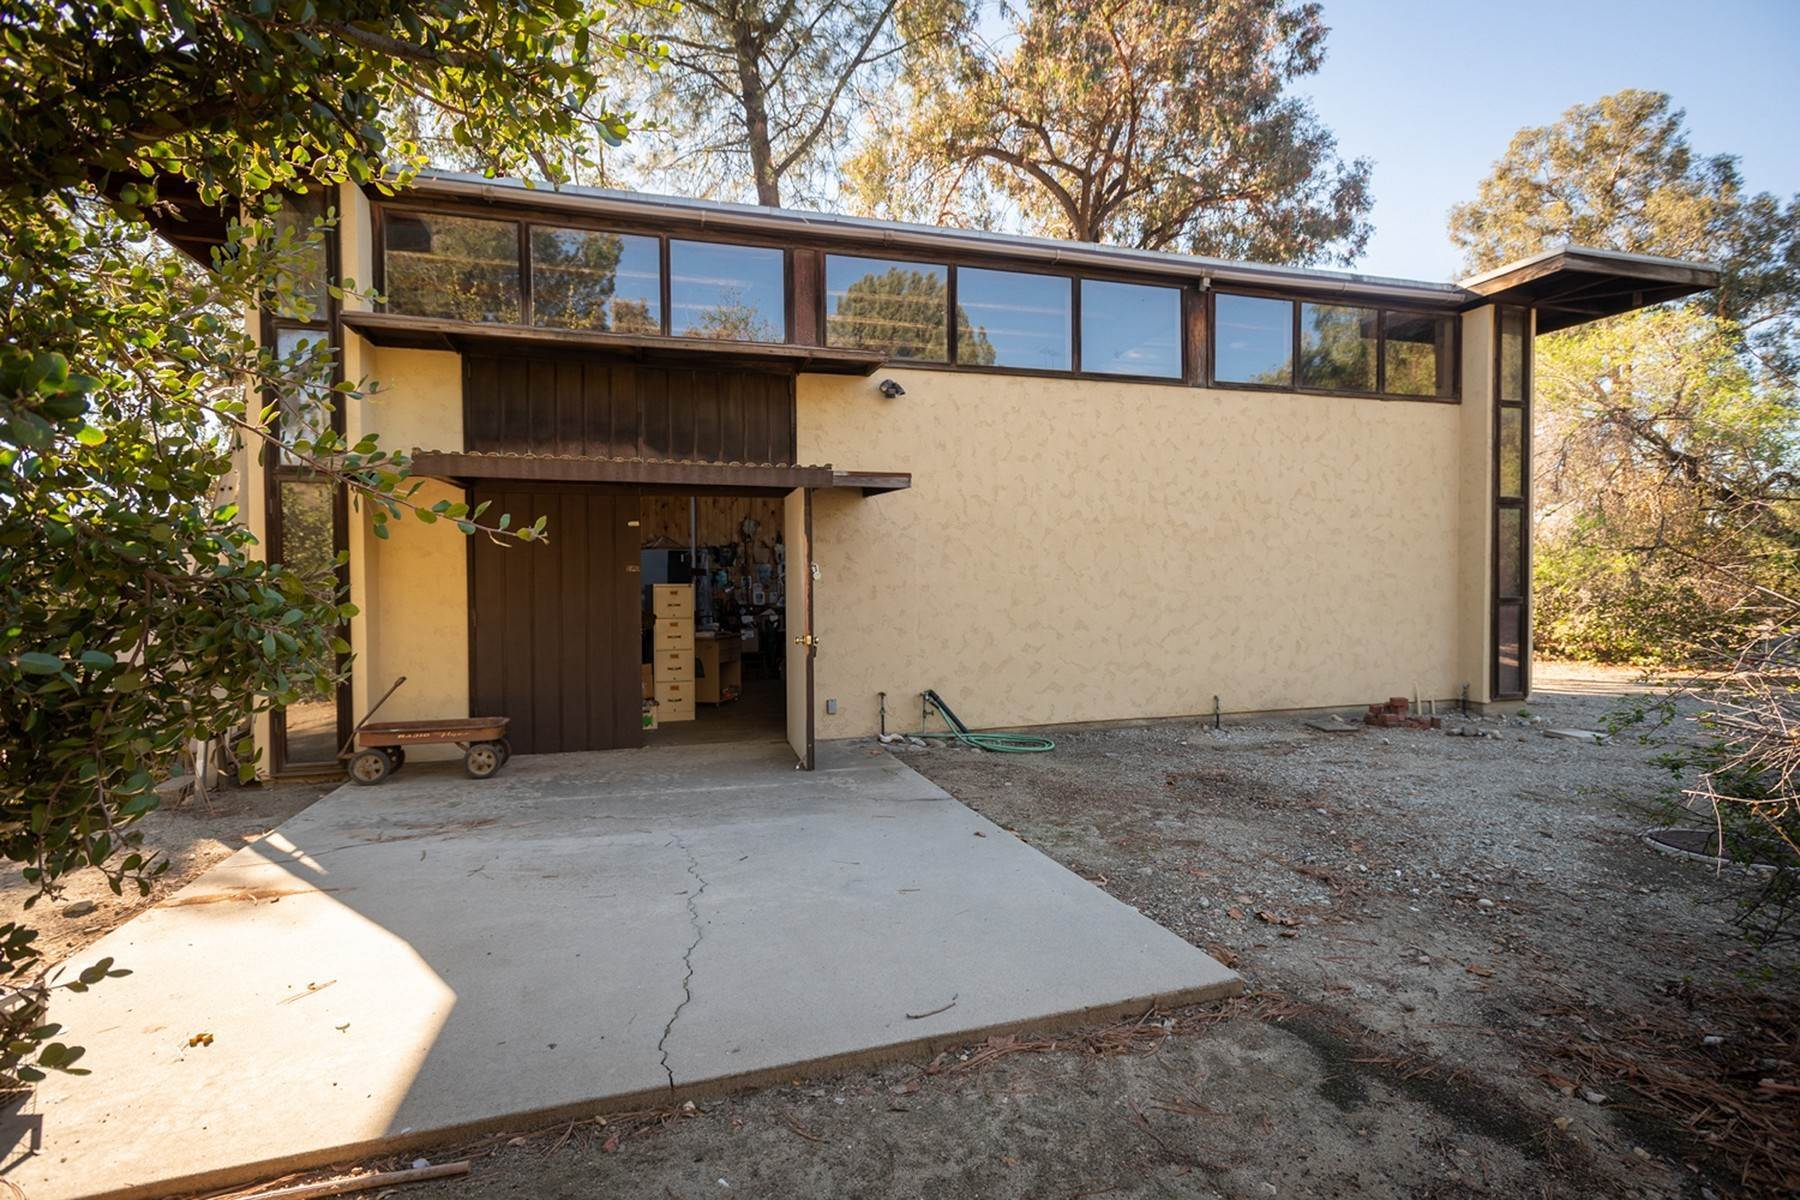 46. Single Family Homes for Sale at 190 E. Radcliffe Drive, Claremont, CA 91711 190 E. Radcliffe Drive Claremont, California 91711 United States